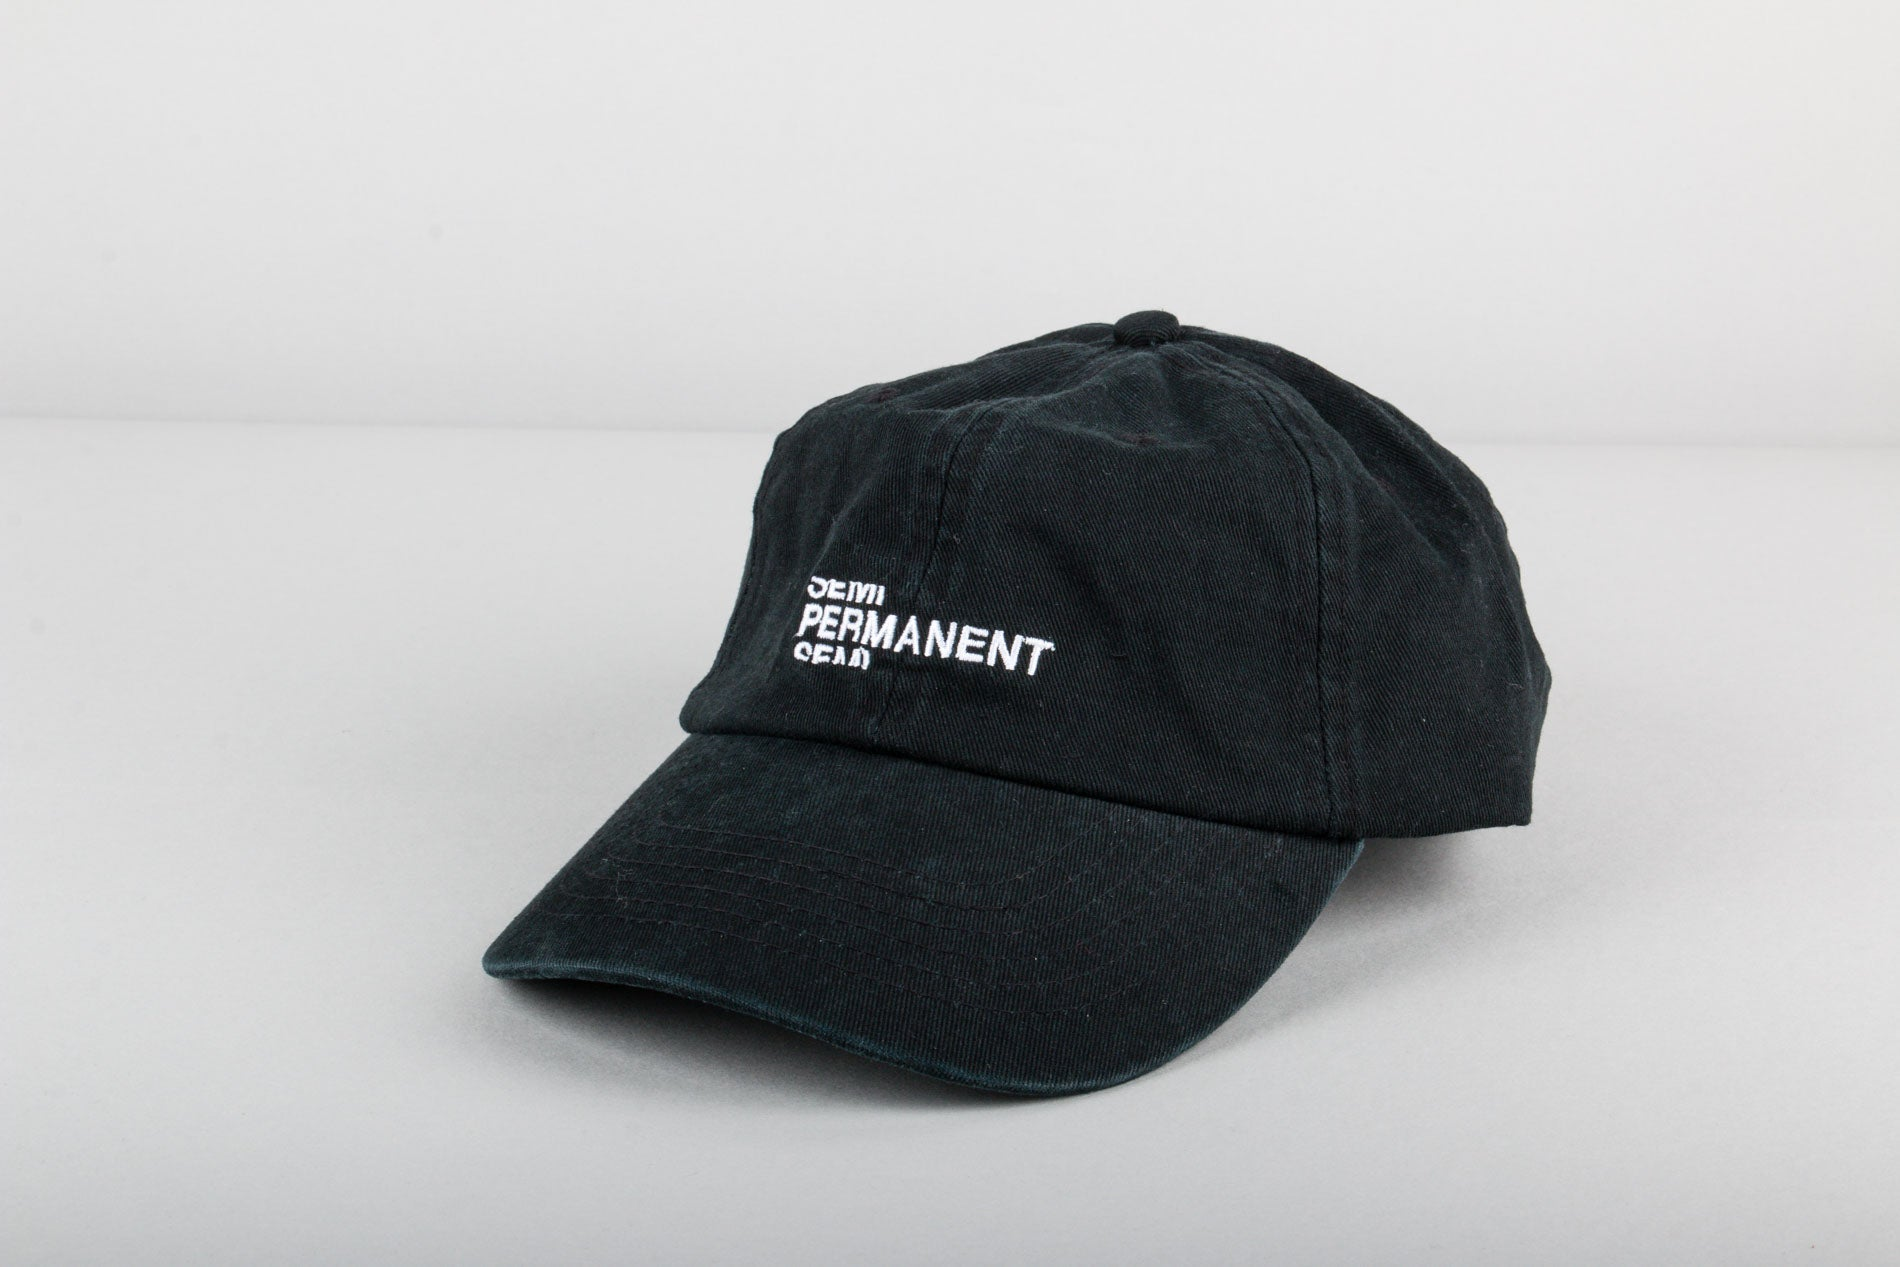 Semi Permanent Worktones Cap - Faded Black